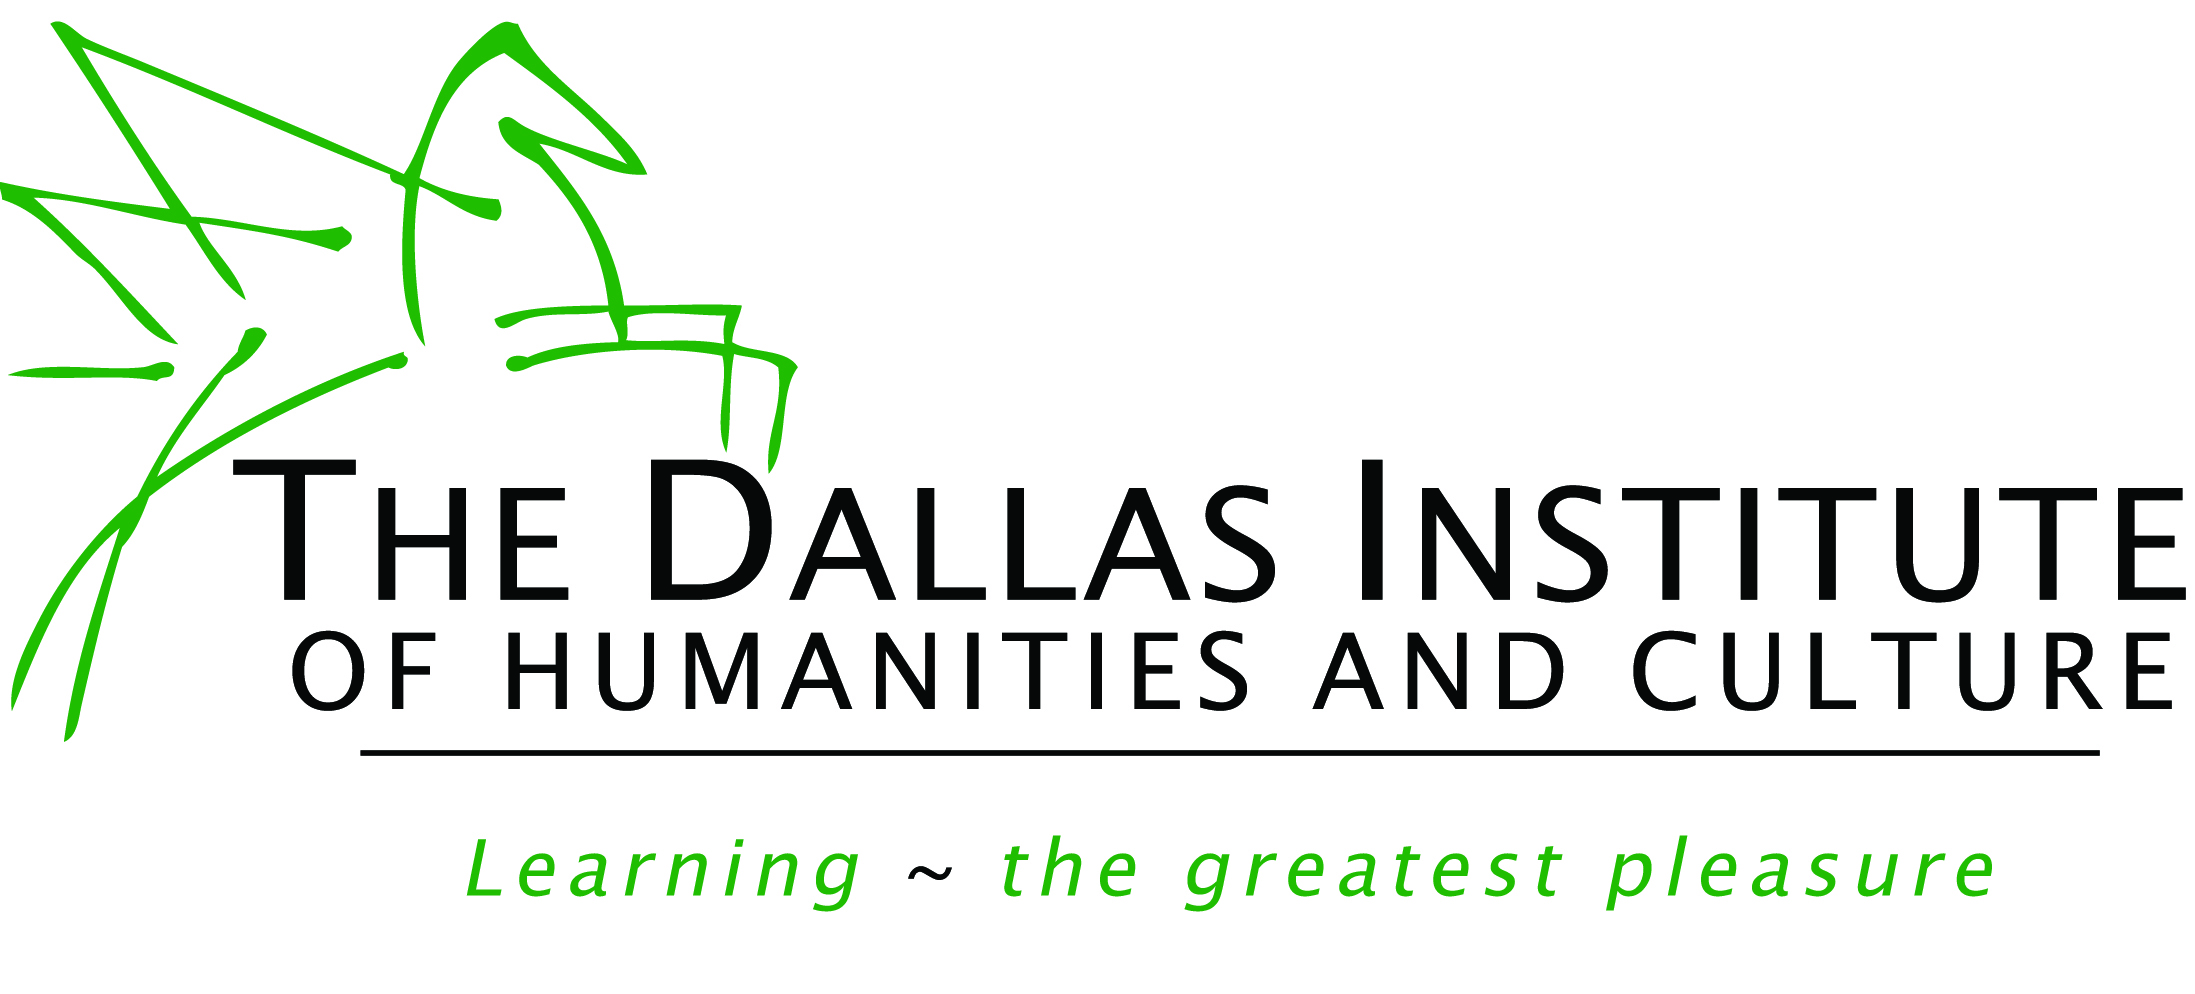 NEW LOGO with TAGLINE-Green and Black-JPEG.jpg